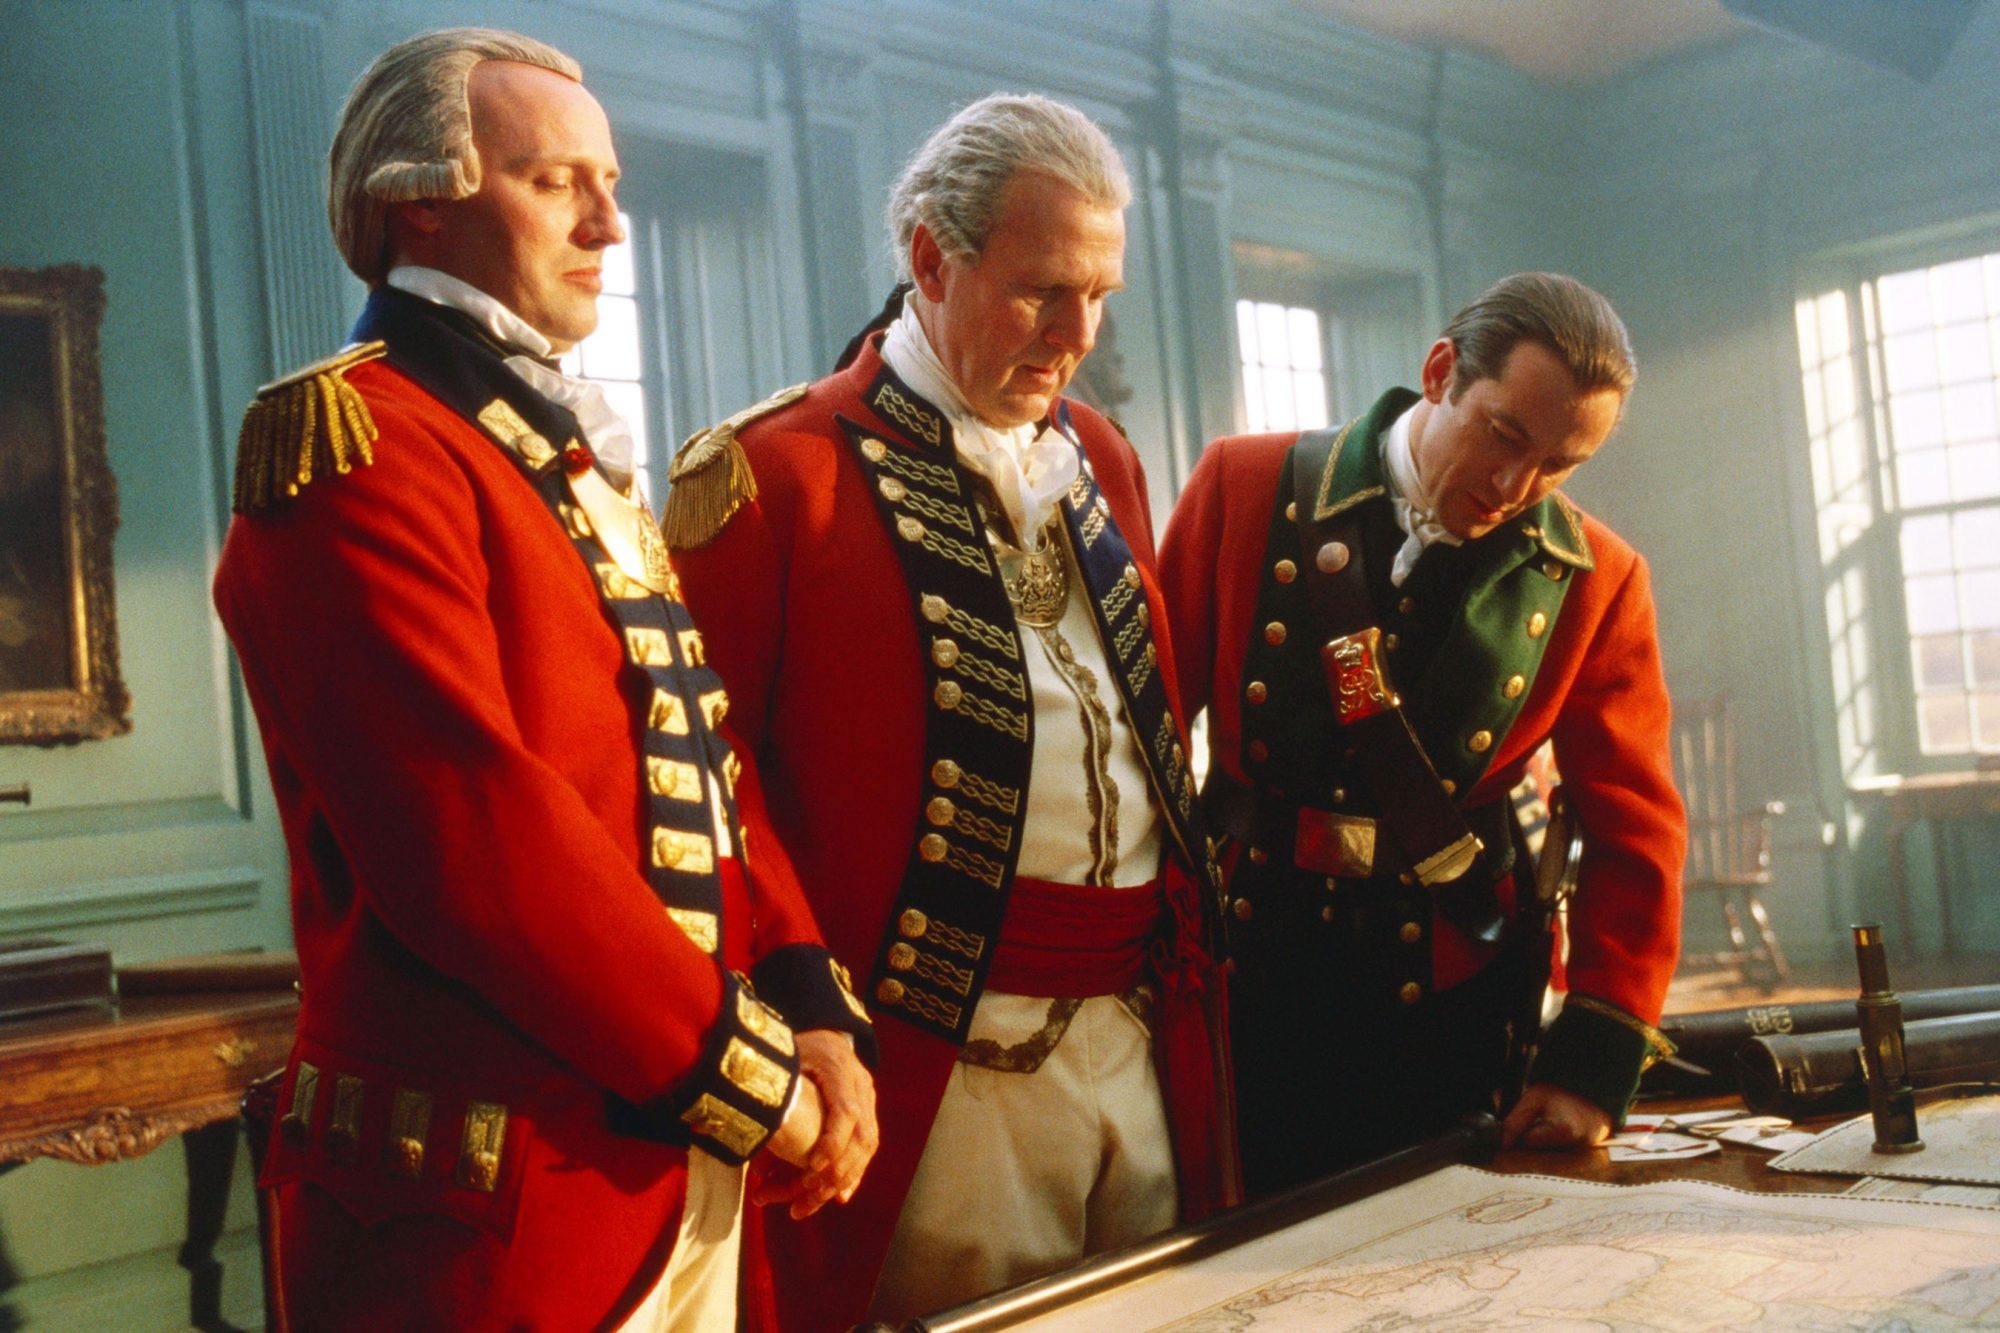 THE PATRIOT, Tom Wilkinson (center), Jason Isaacs (right), 2000. ©Columbia Pictures/Courtesy Everett